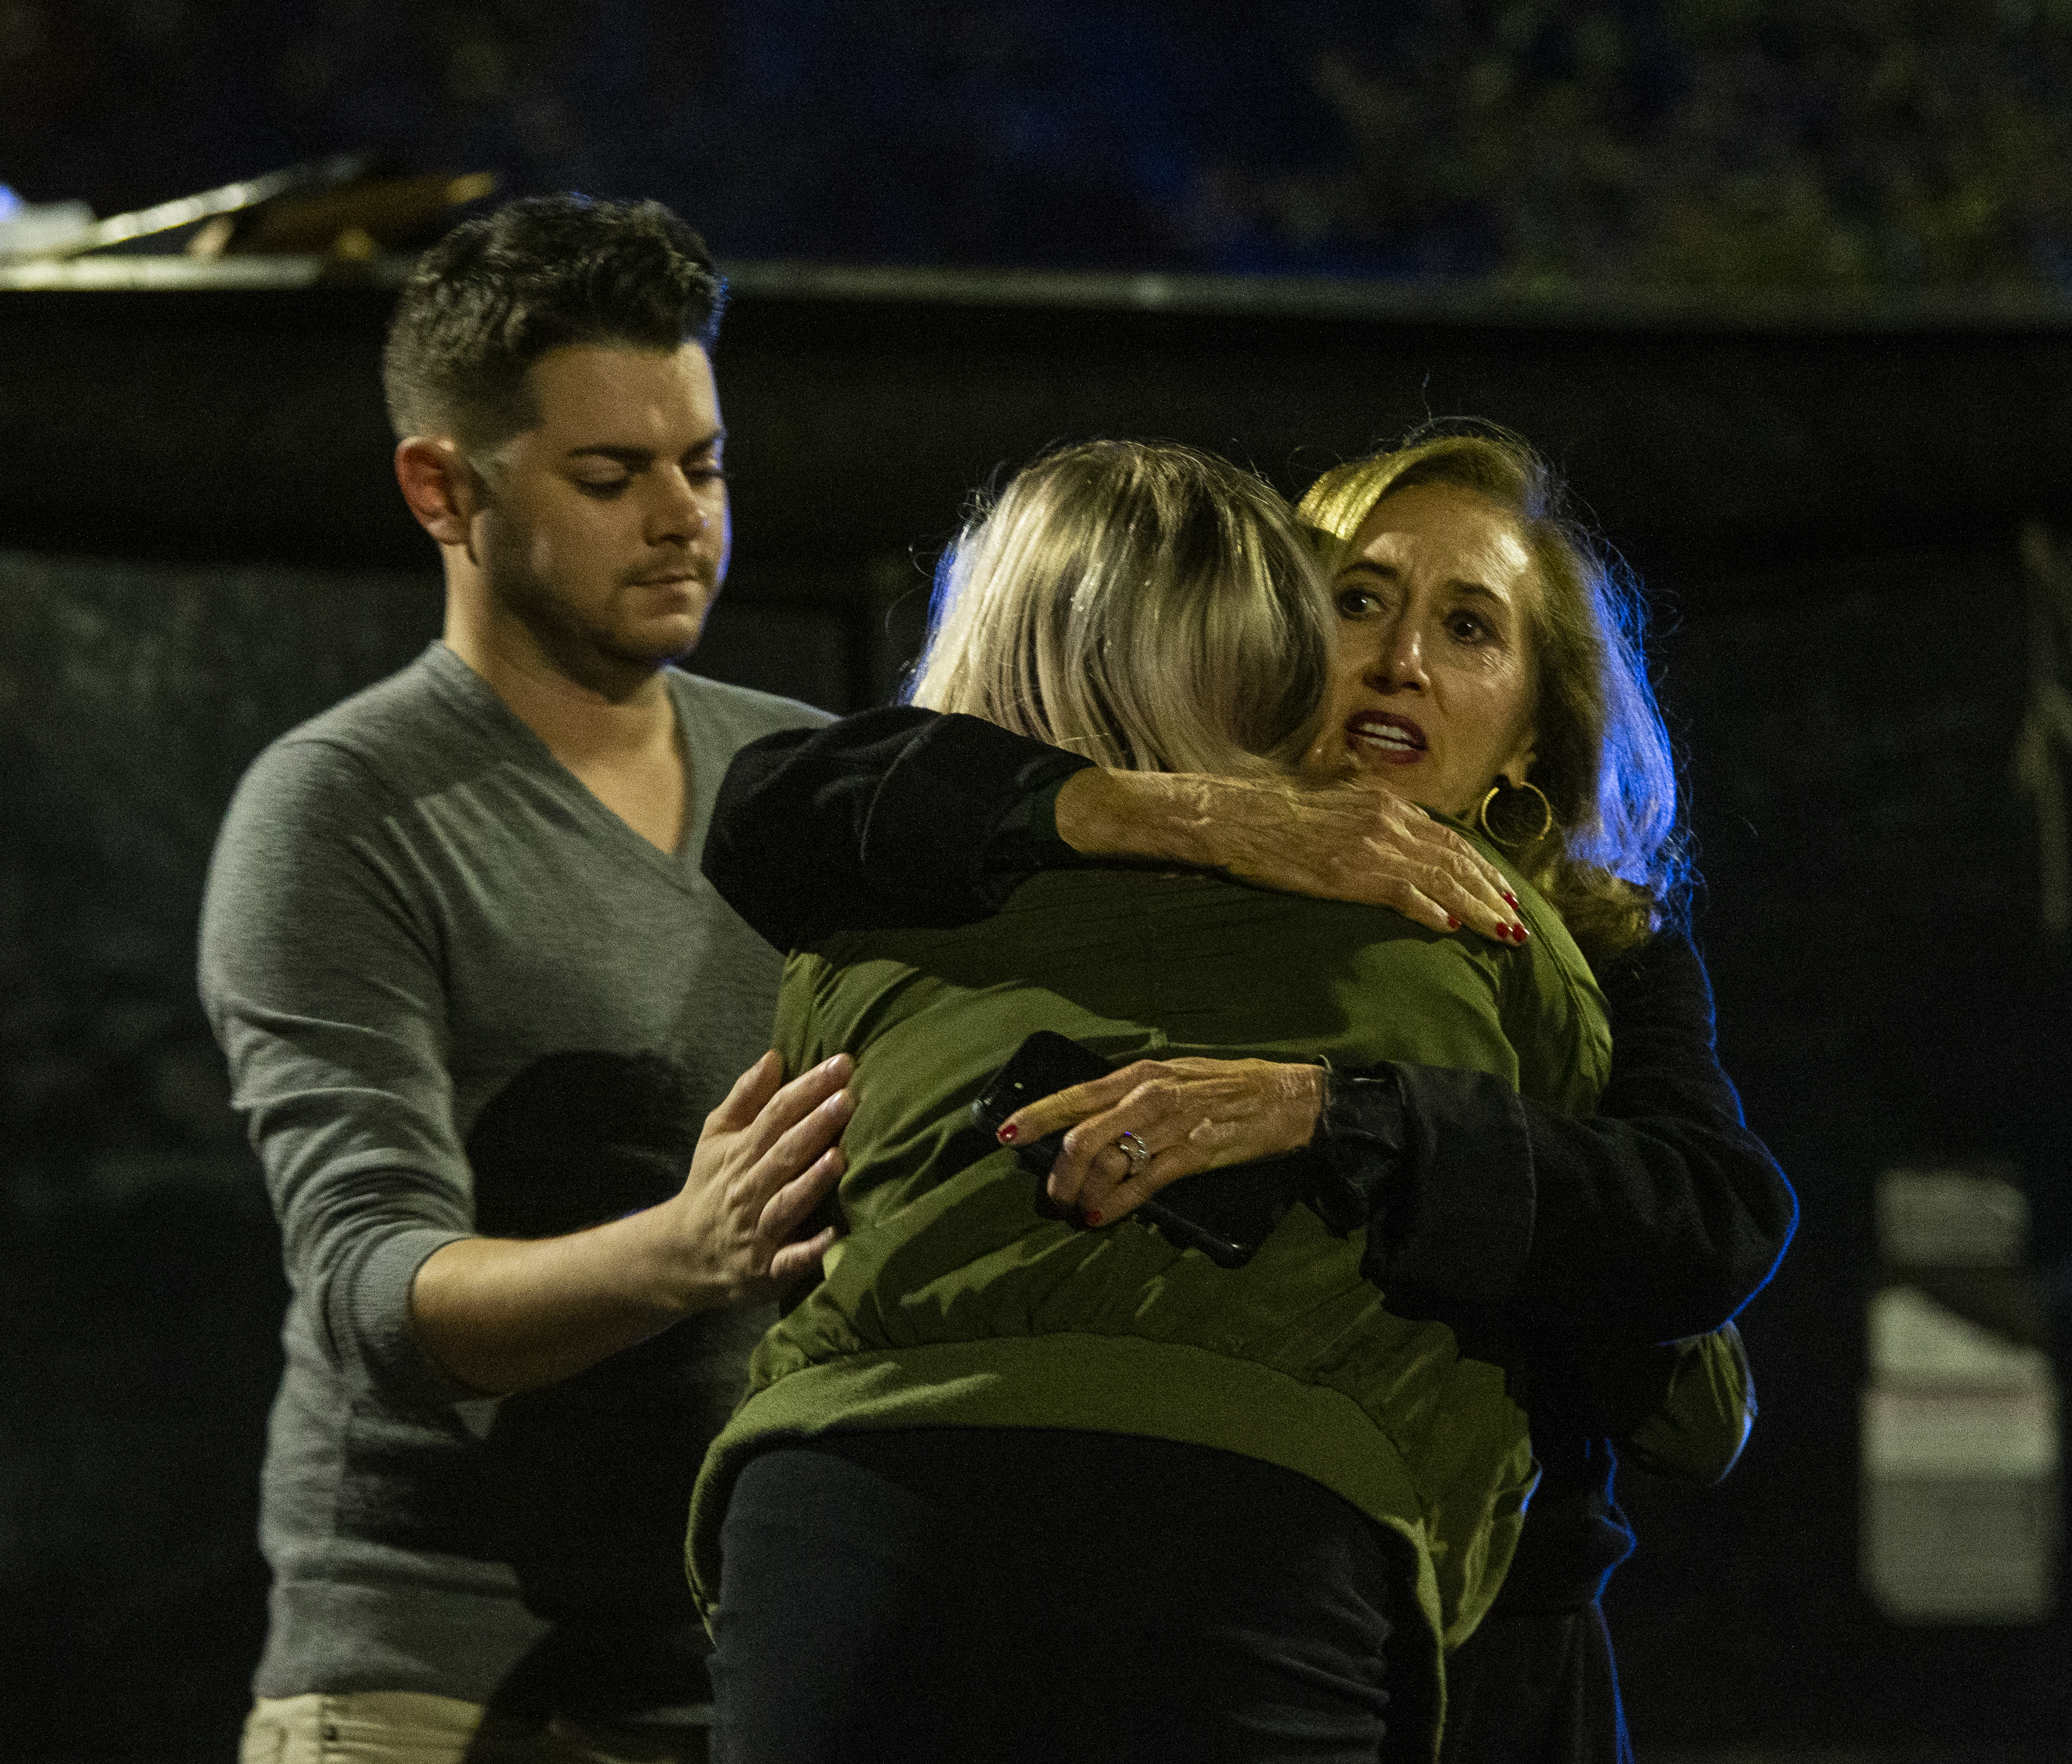 Matthew Rodin, left and Susan Turner comfort Melissa Hutchinson who rendered aid to some of the victims of a mass shooting November 2, 2018 in Tallahassee, Florida. Mark Wallheiser/Getty Images